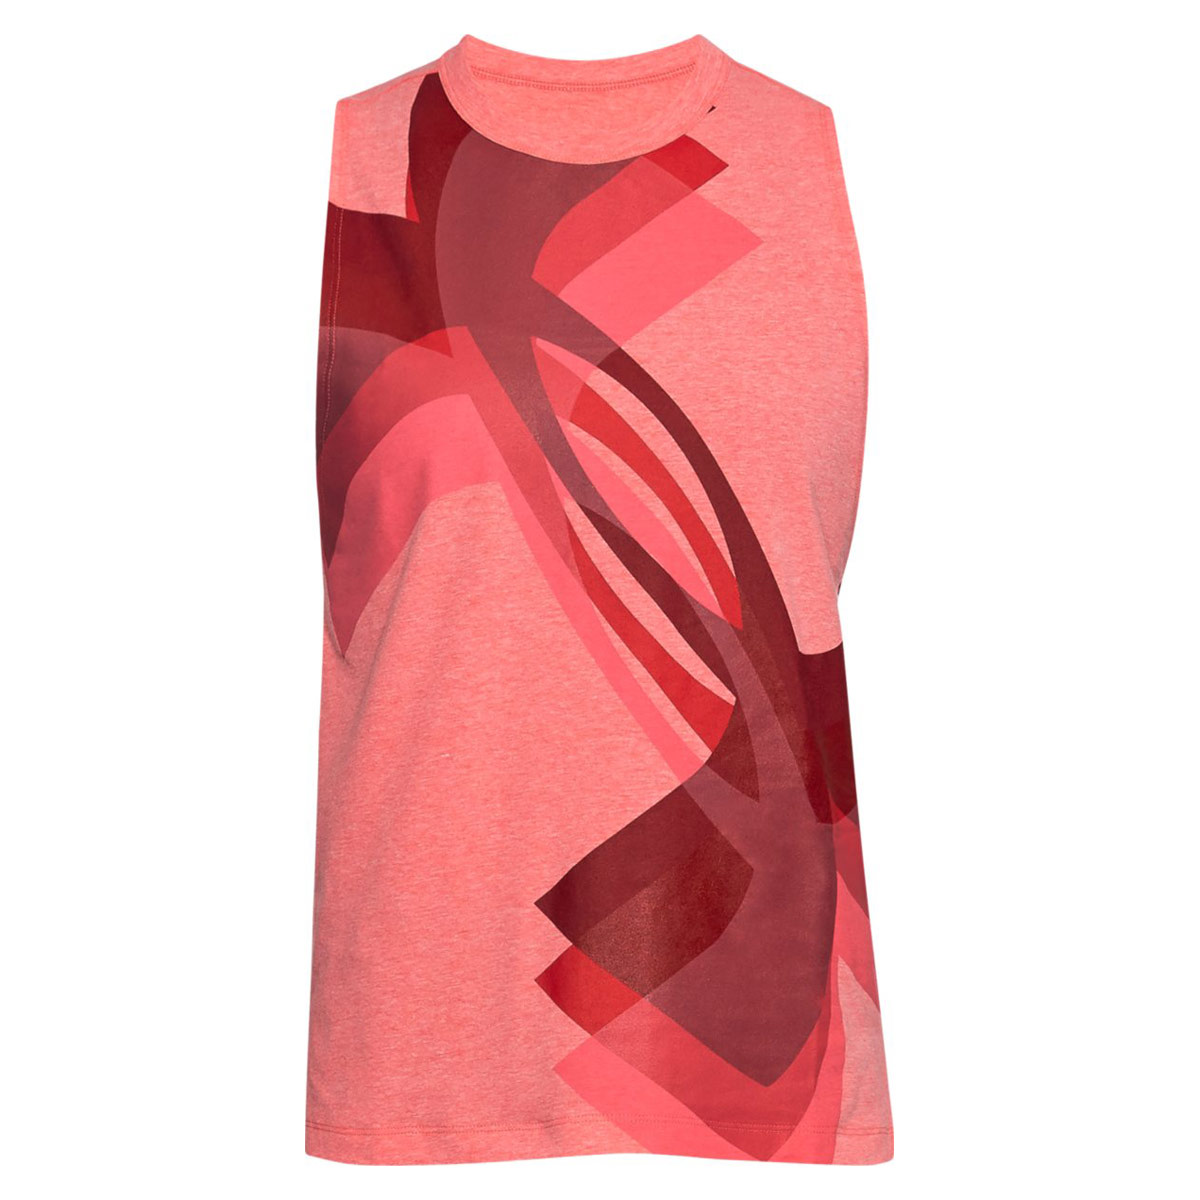 55ea8faa Under Armour Muscle Tank Overlay Logo - Running tops for Women - Pink |  21RUN